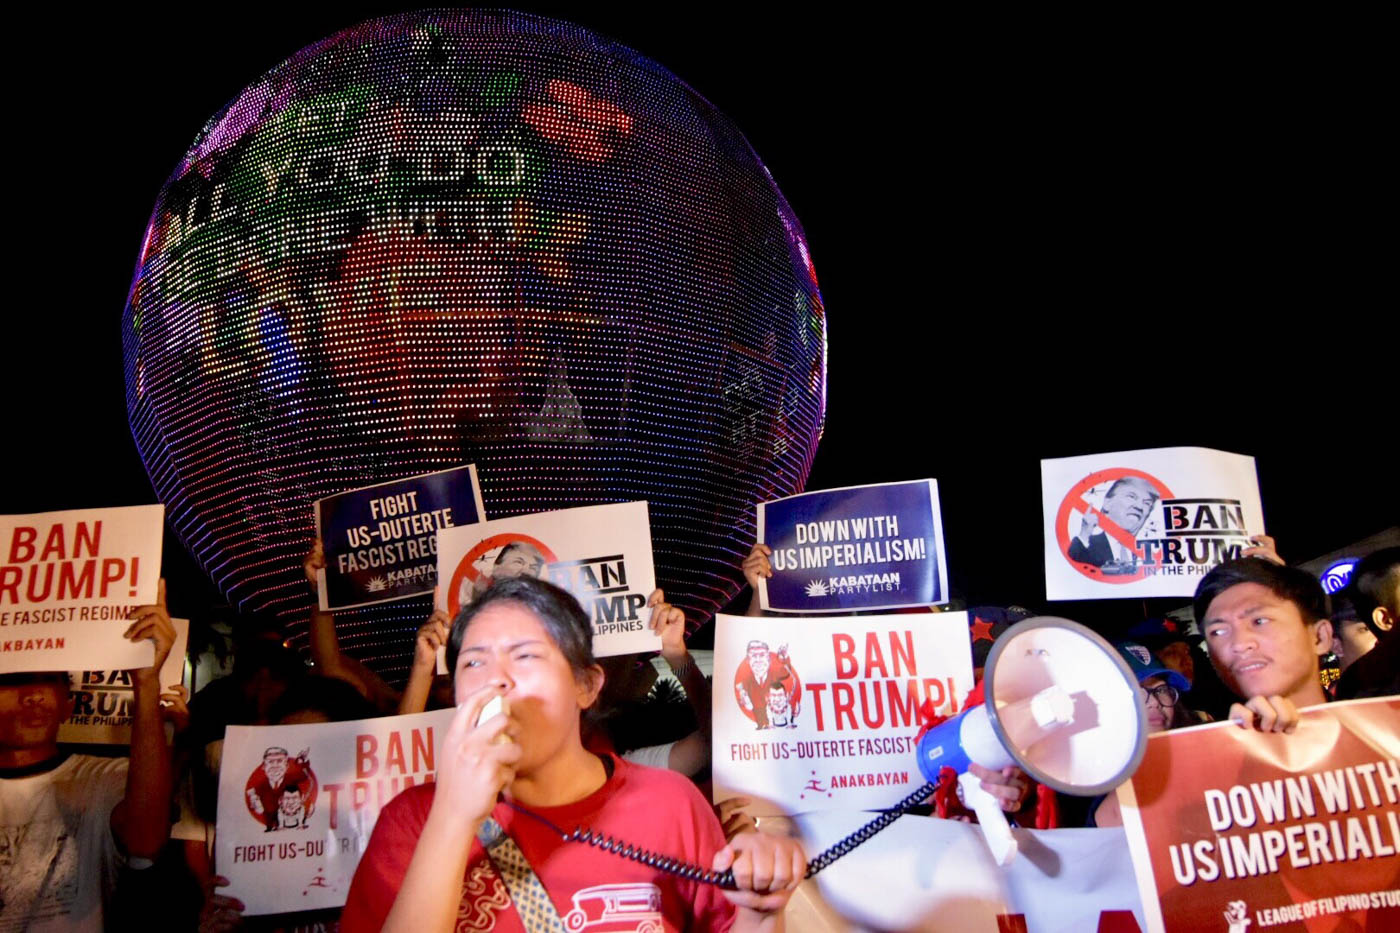 NO TO IMPERIALISM. Almira Abril was one of the leaders of the protest. Photo by LeAnne Jazul/Rappler